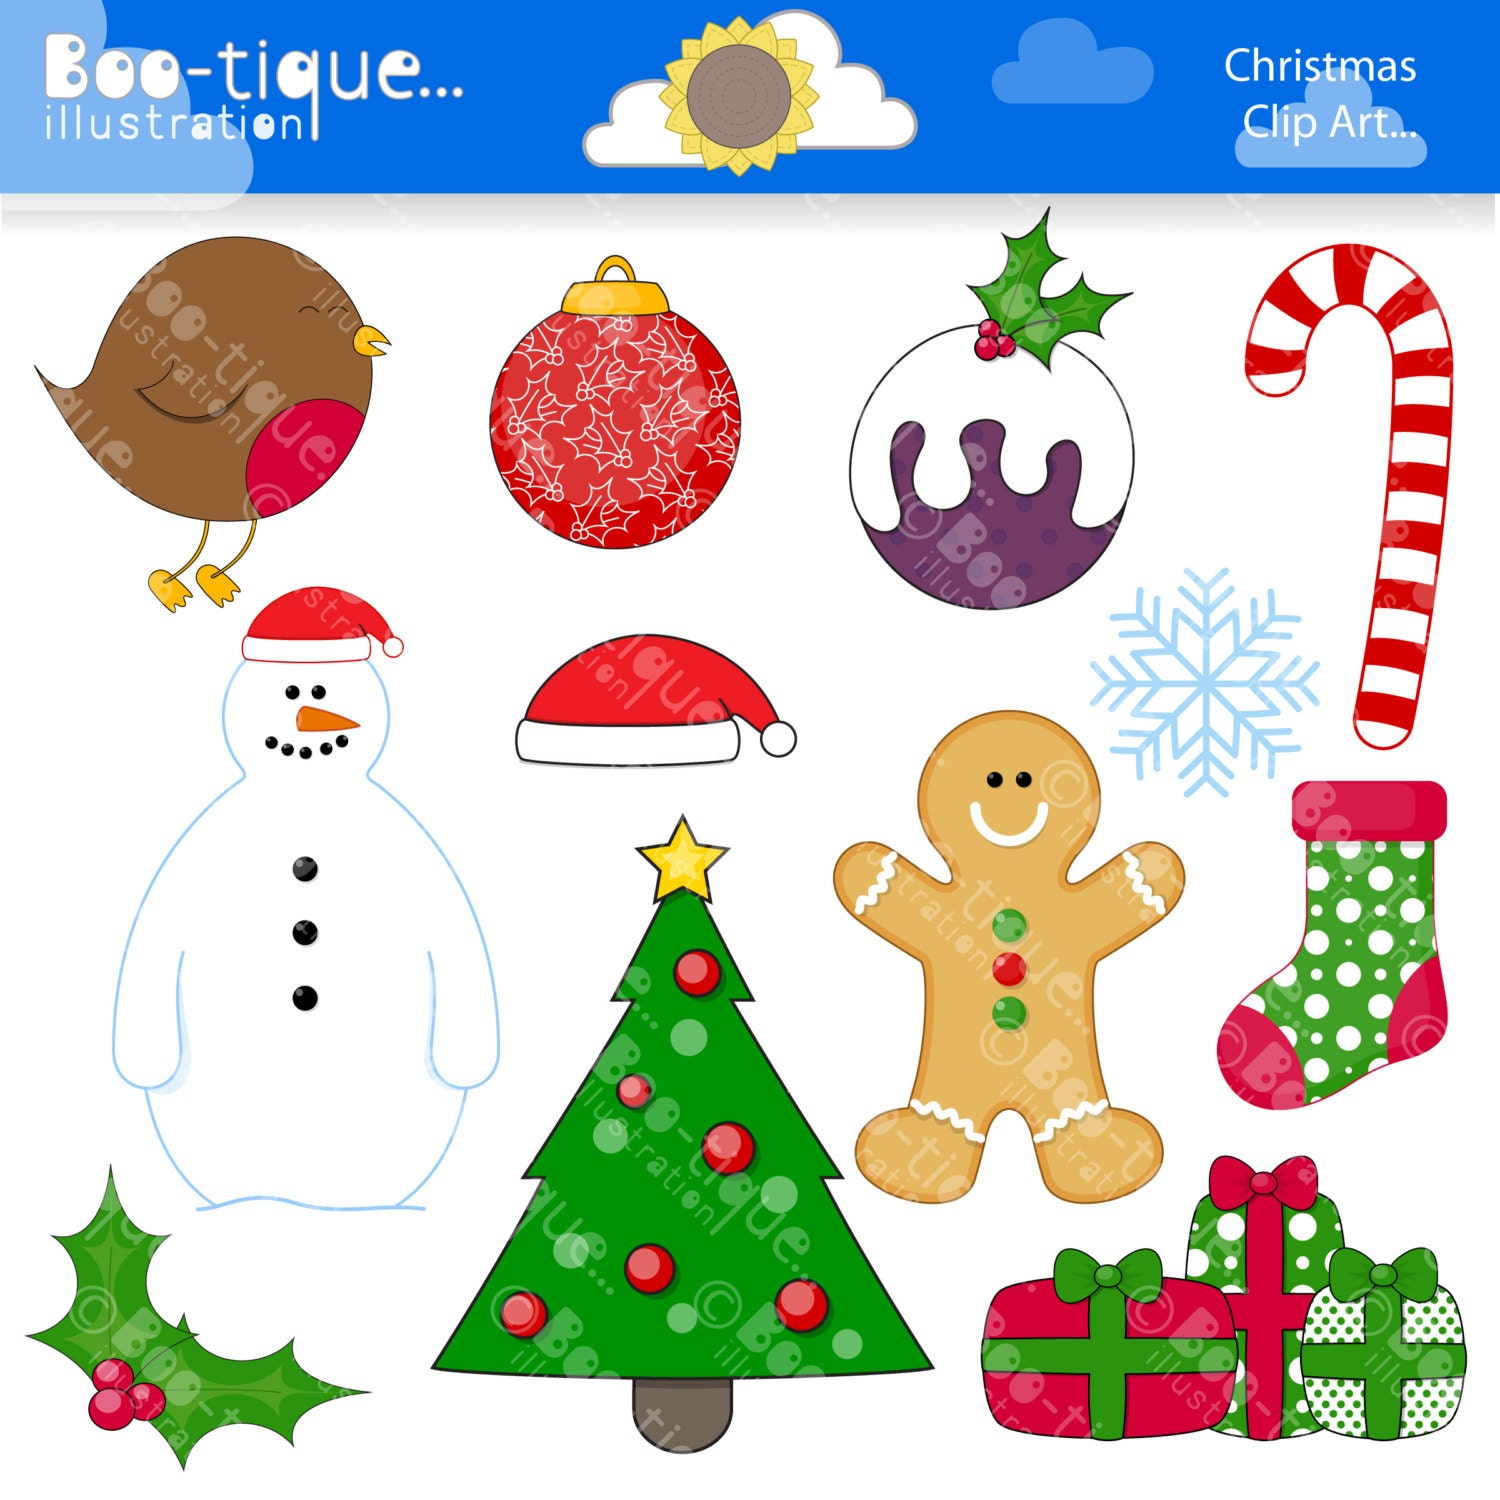 Scrapbooking Christmas Clipart | Boo-tique Illustration Clipart | Page 2